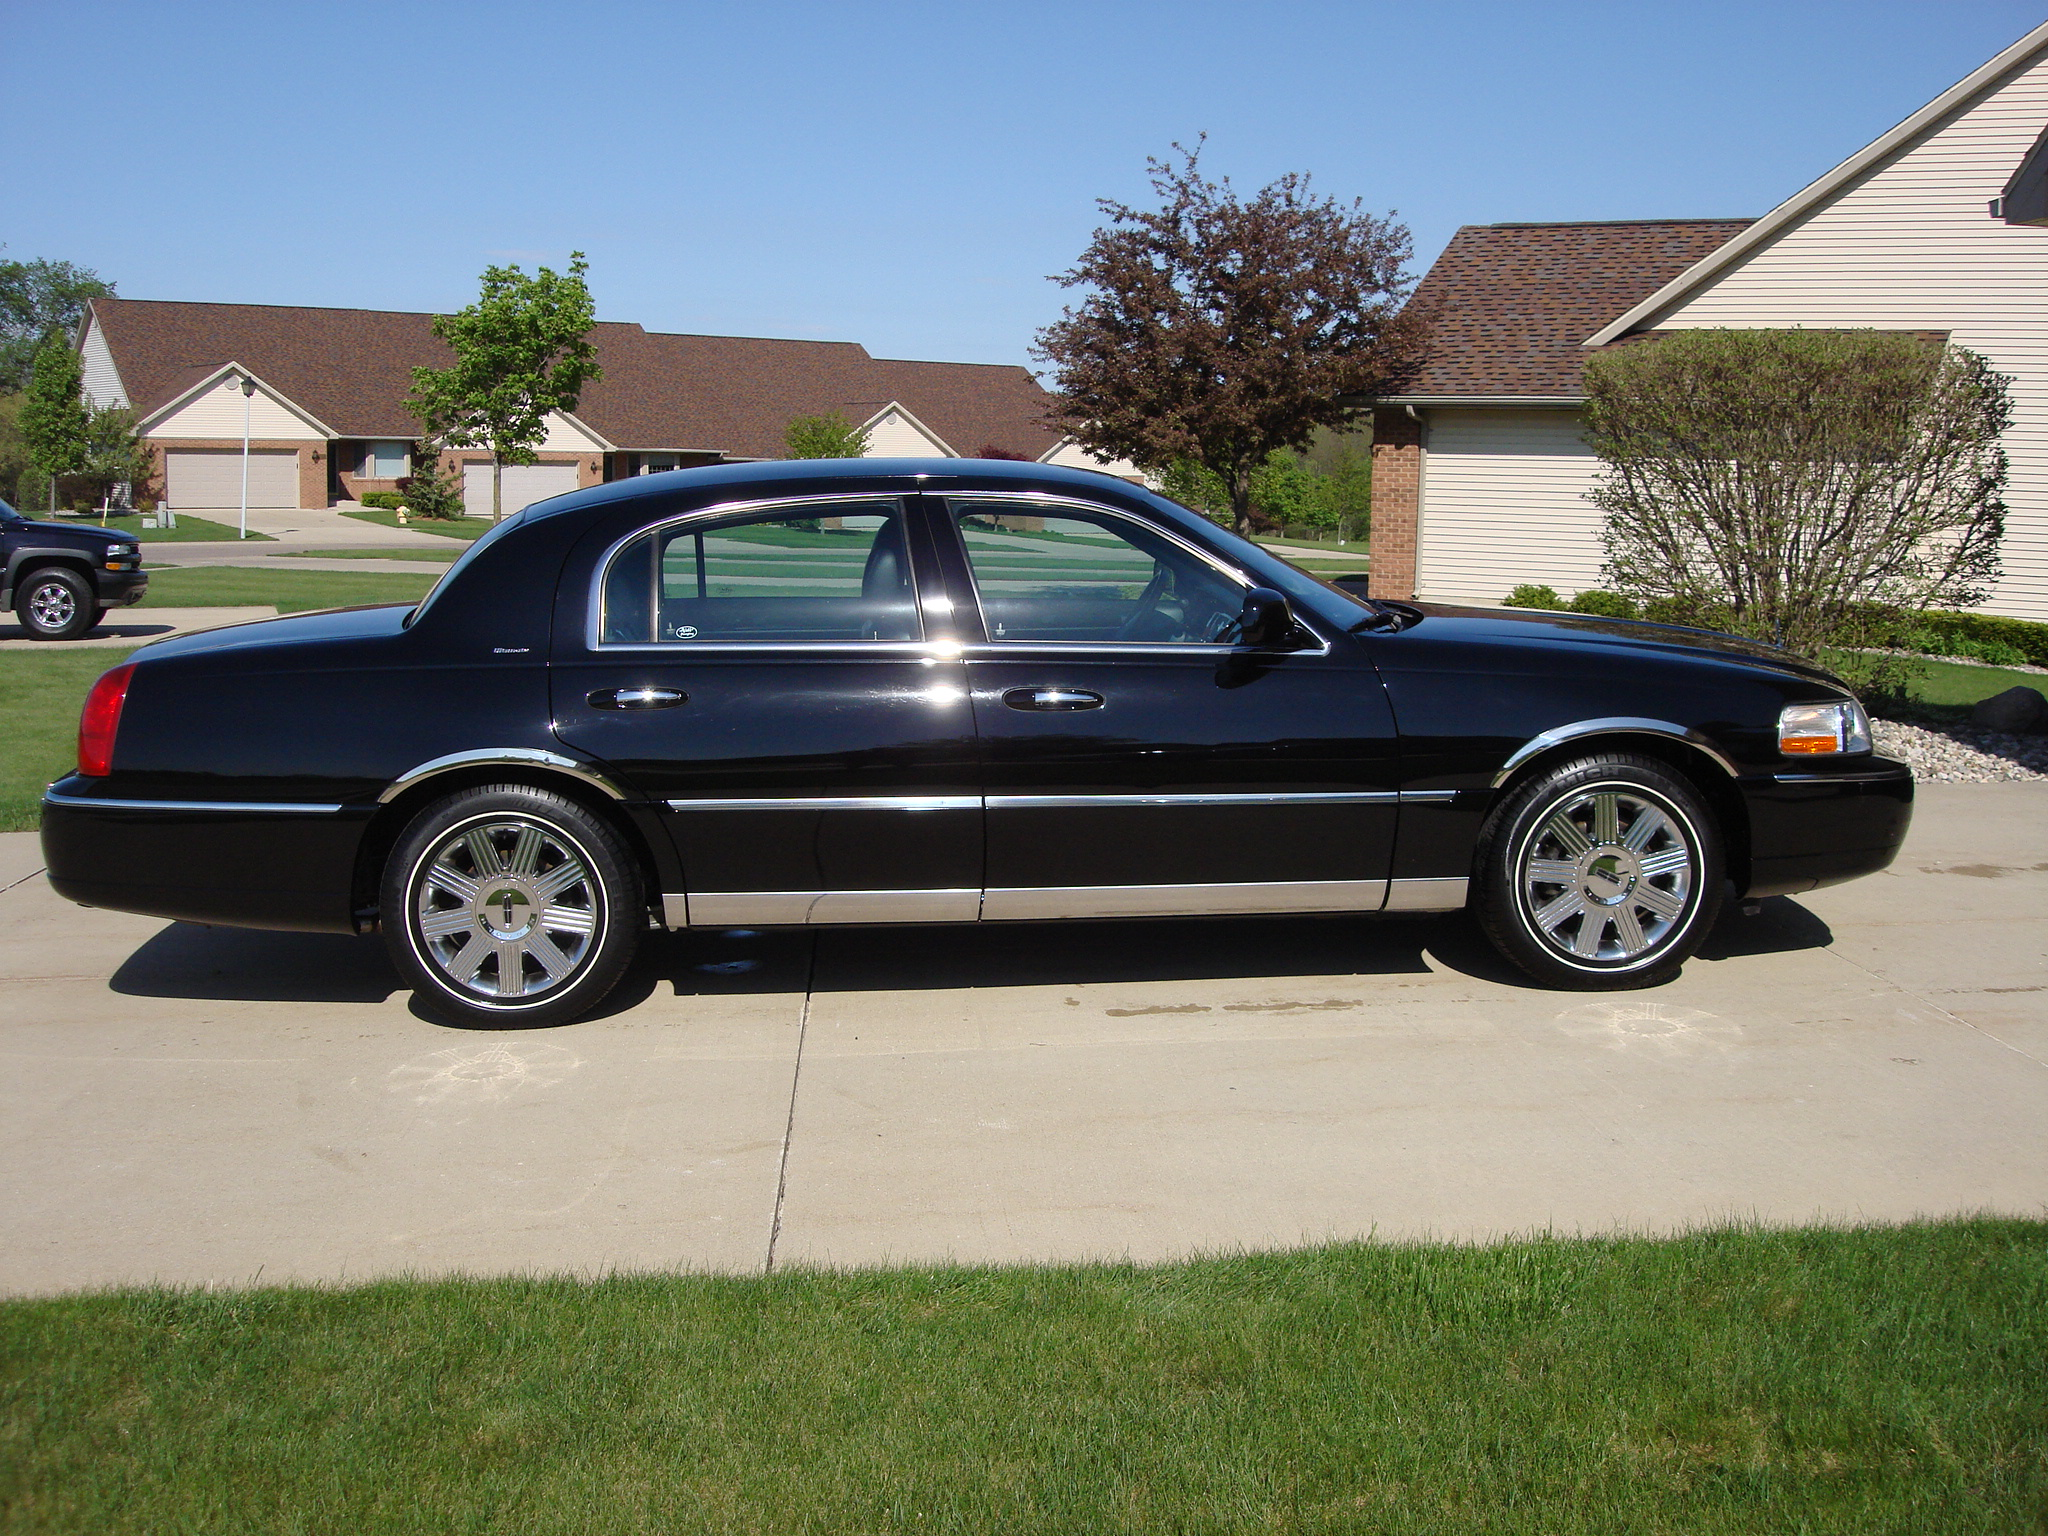 24 Inch Rims 24 Inch Rims Lincoln Town Car